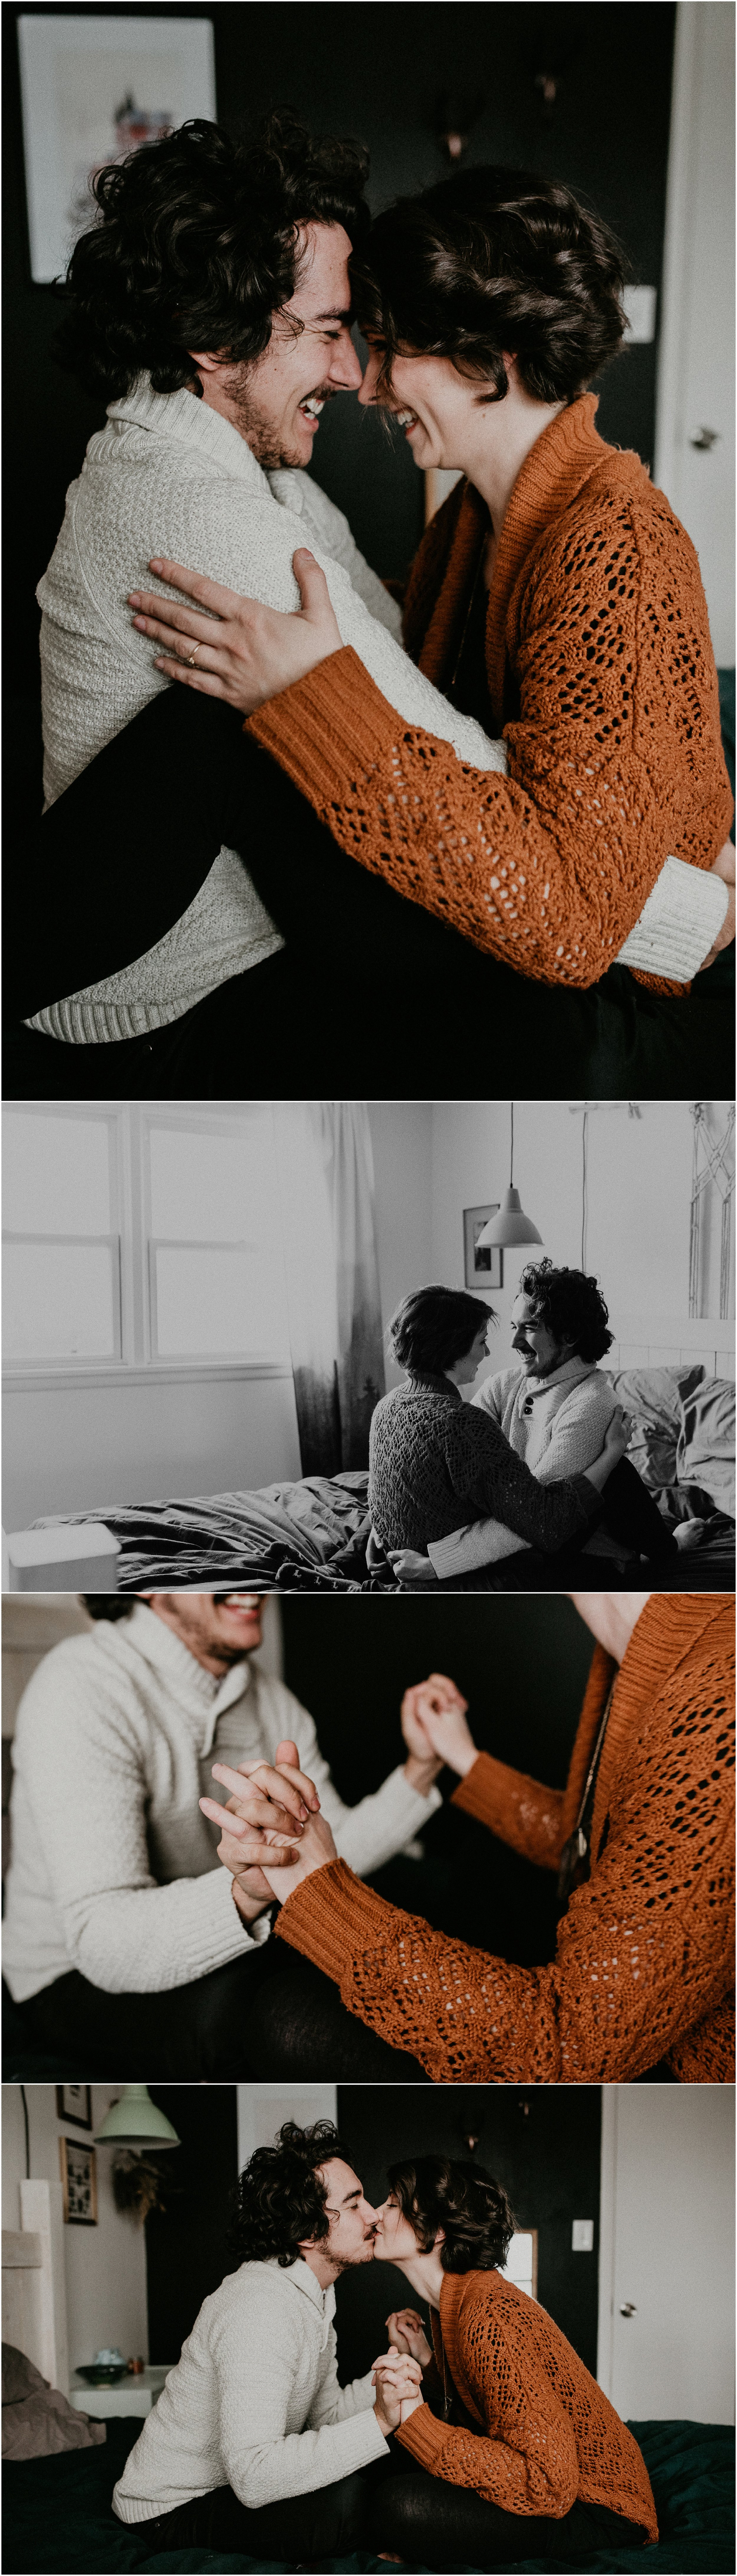 Boise Engagement Wedding Photographer Lifestyle Couples Session In home Dogs Christmas Winter Laughter Love Kissing